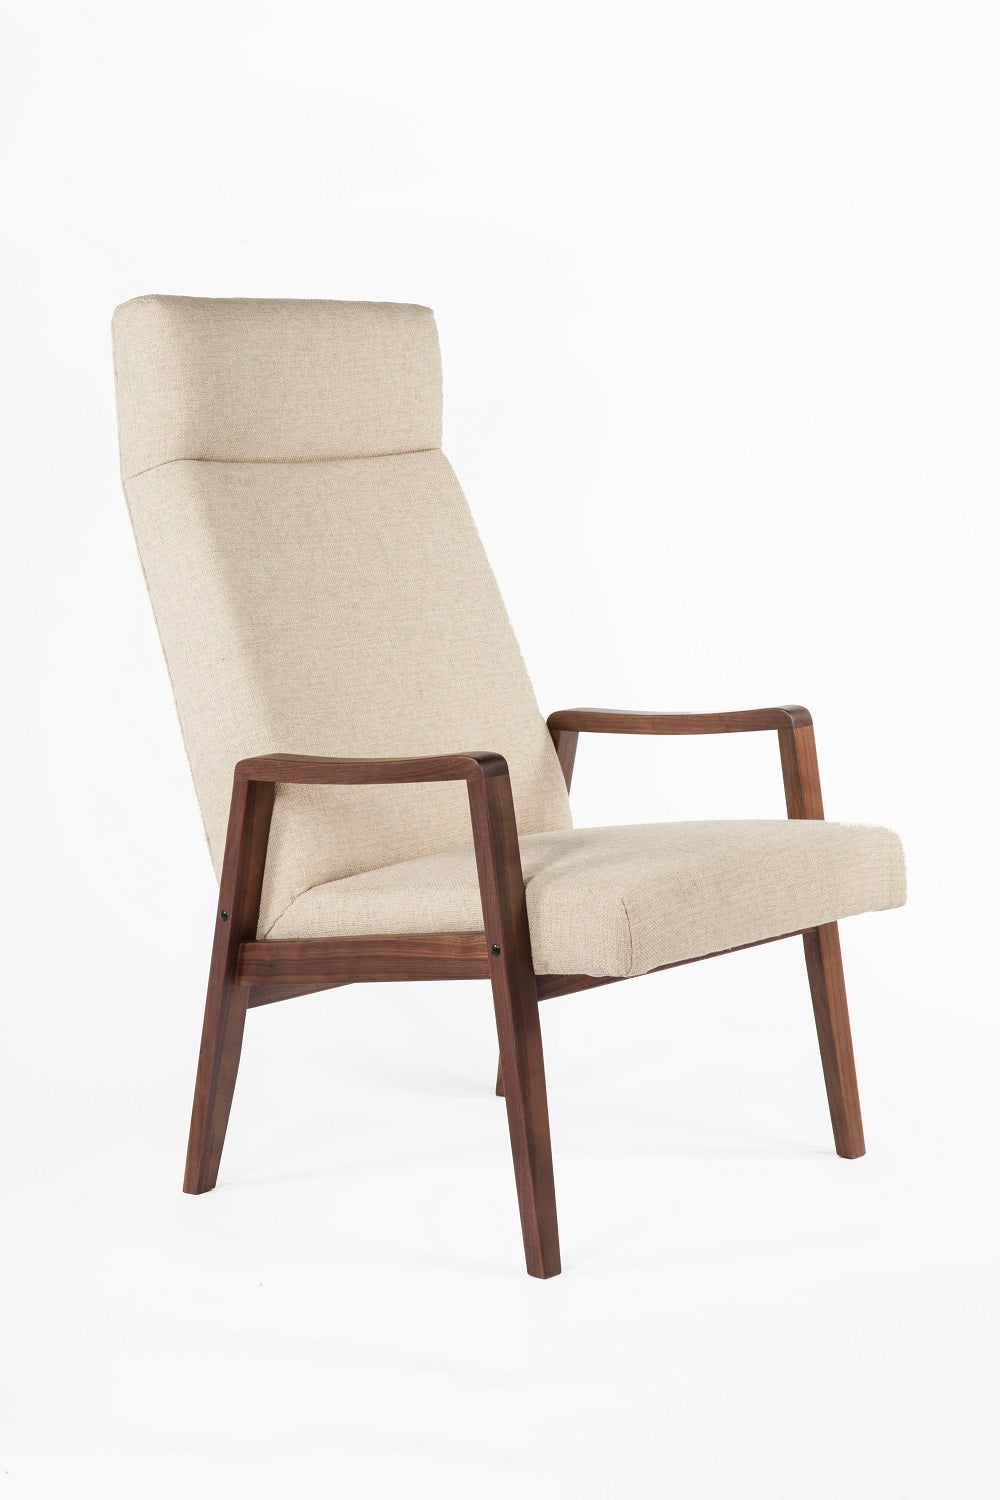 The Flying Lounge Chair [FEC9639BEIGE]